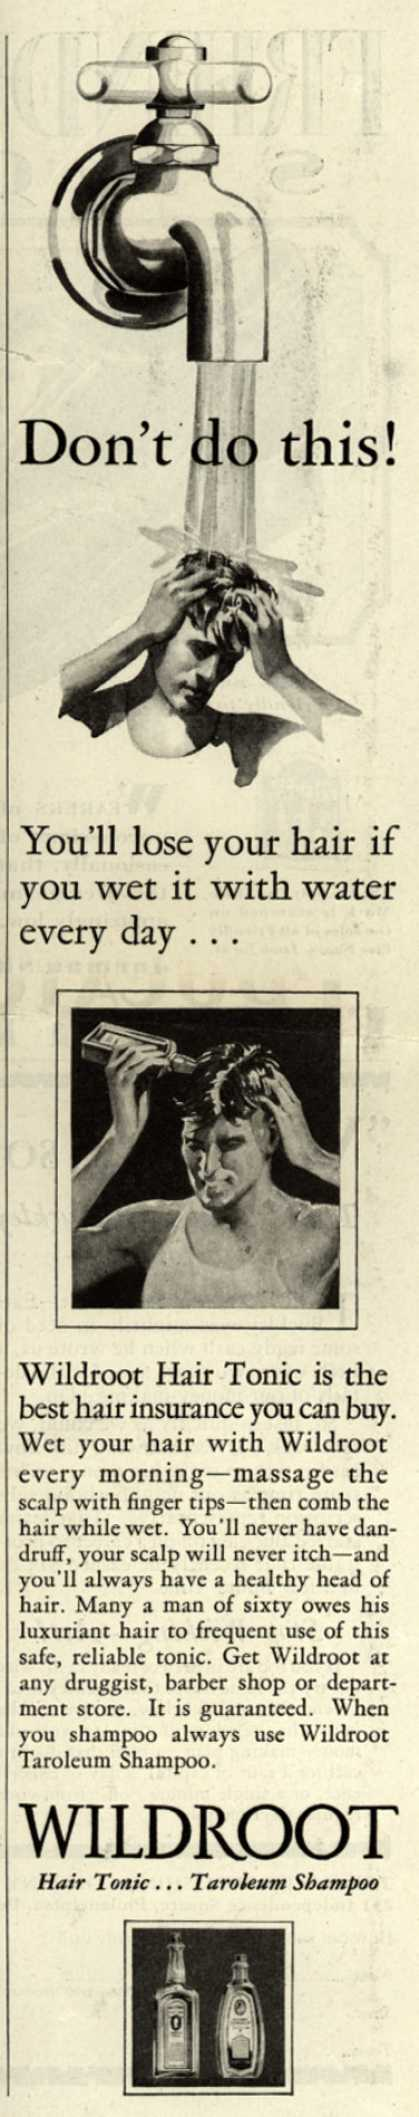 Wildroot Company's Wildroot Hair Preparations – Don't do this (1929)